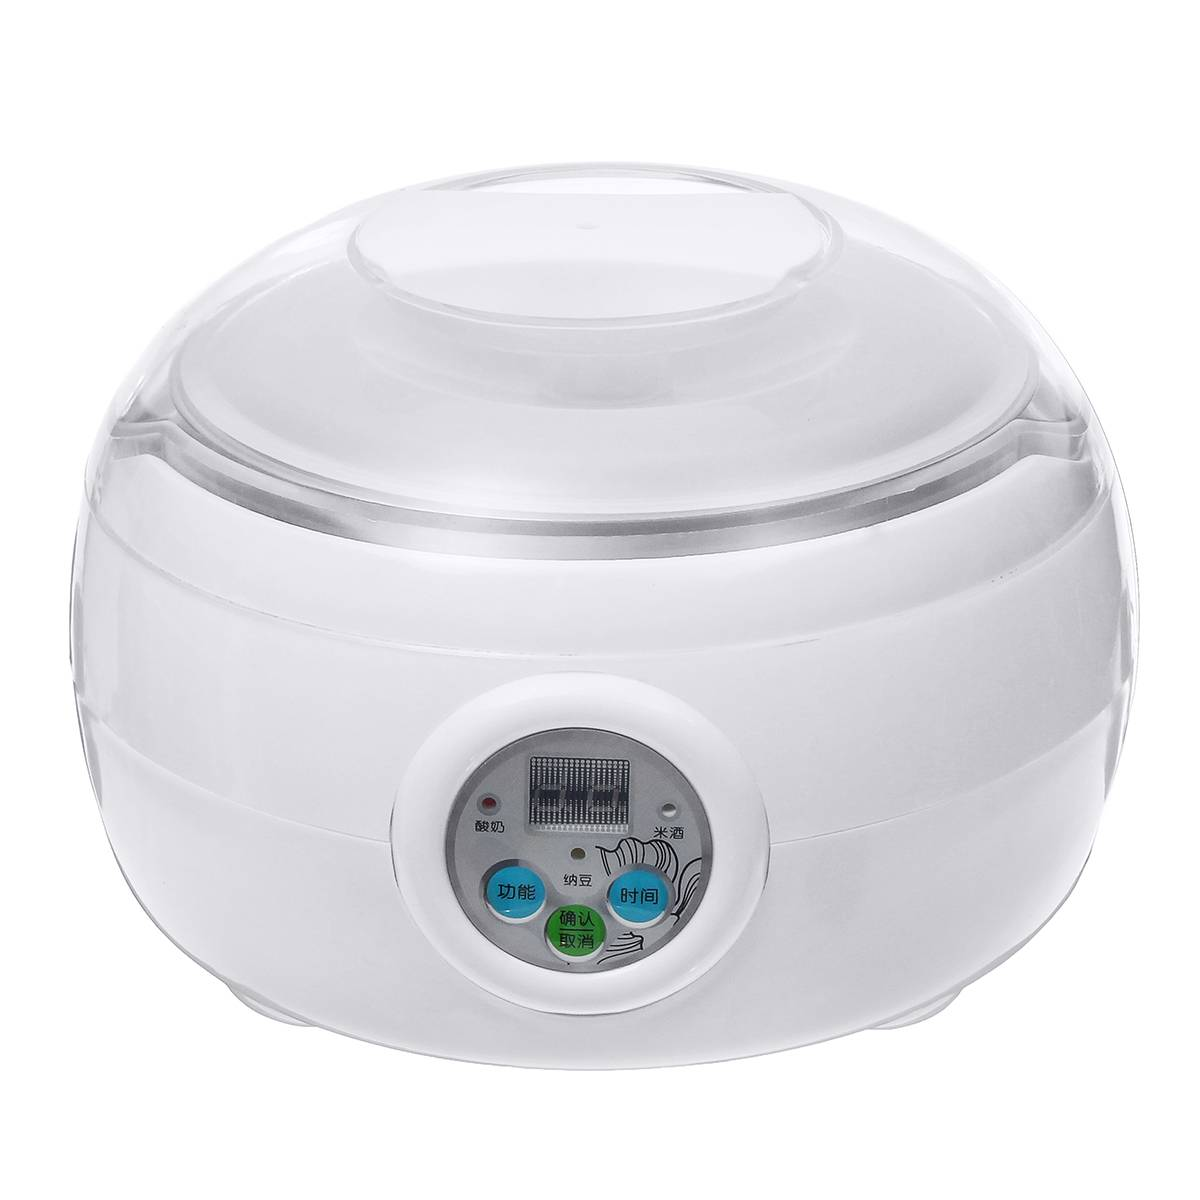 1.5L 220V 15W White Electric Automatic Yoghurt Maker Rice Wine Natto Cuisine Container Yogurt Maker Kitchen Appliance 14x21cm